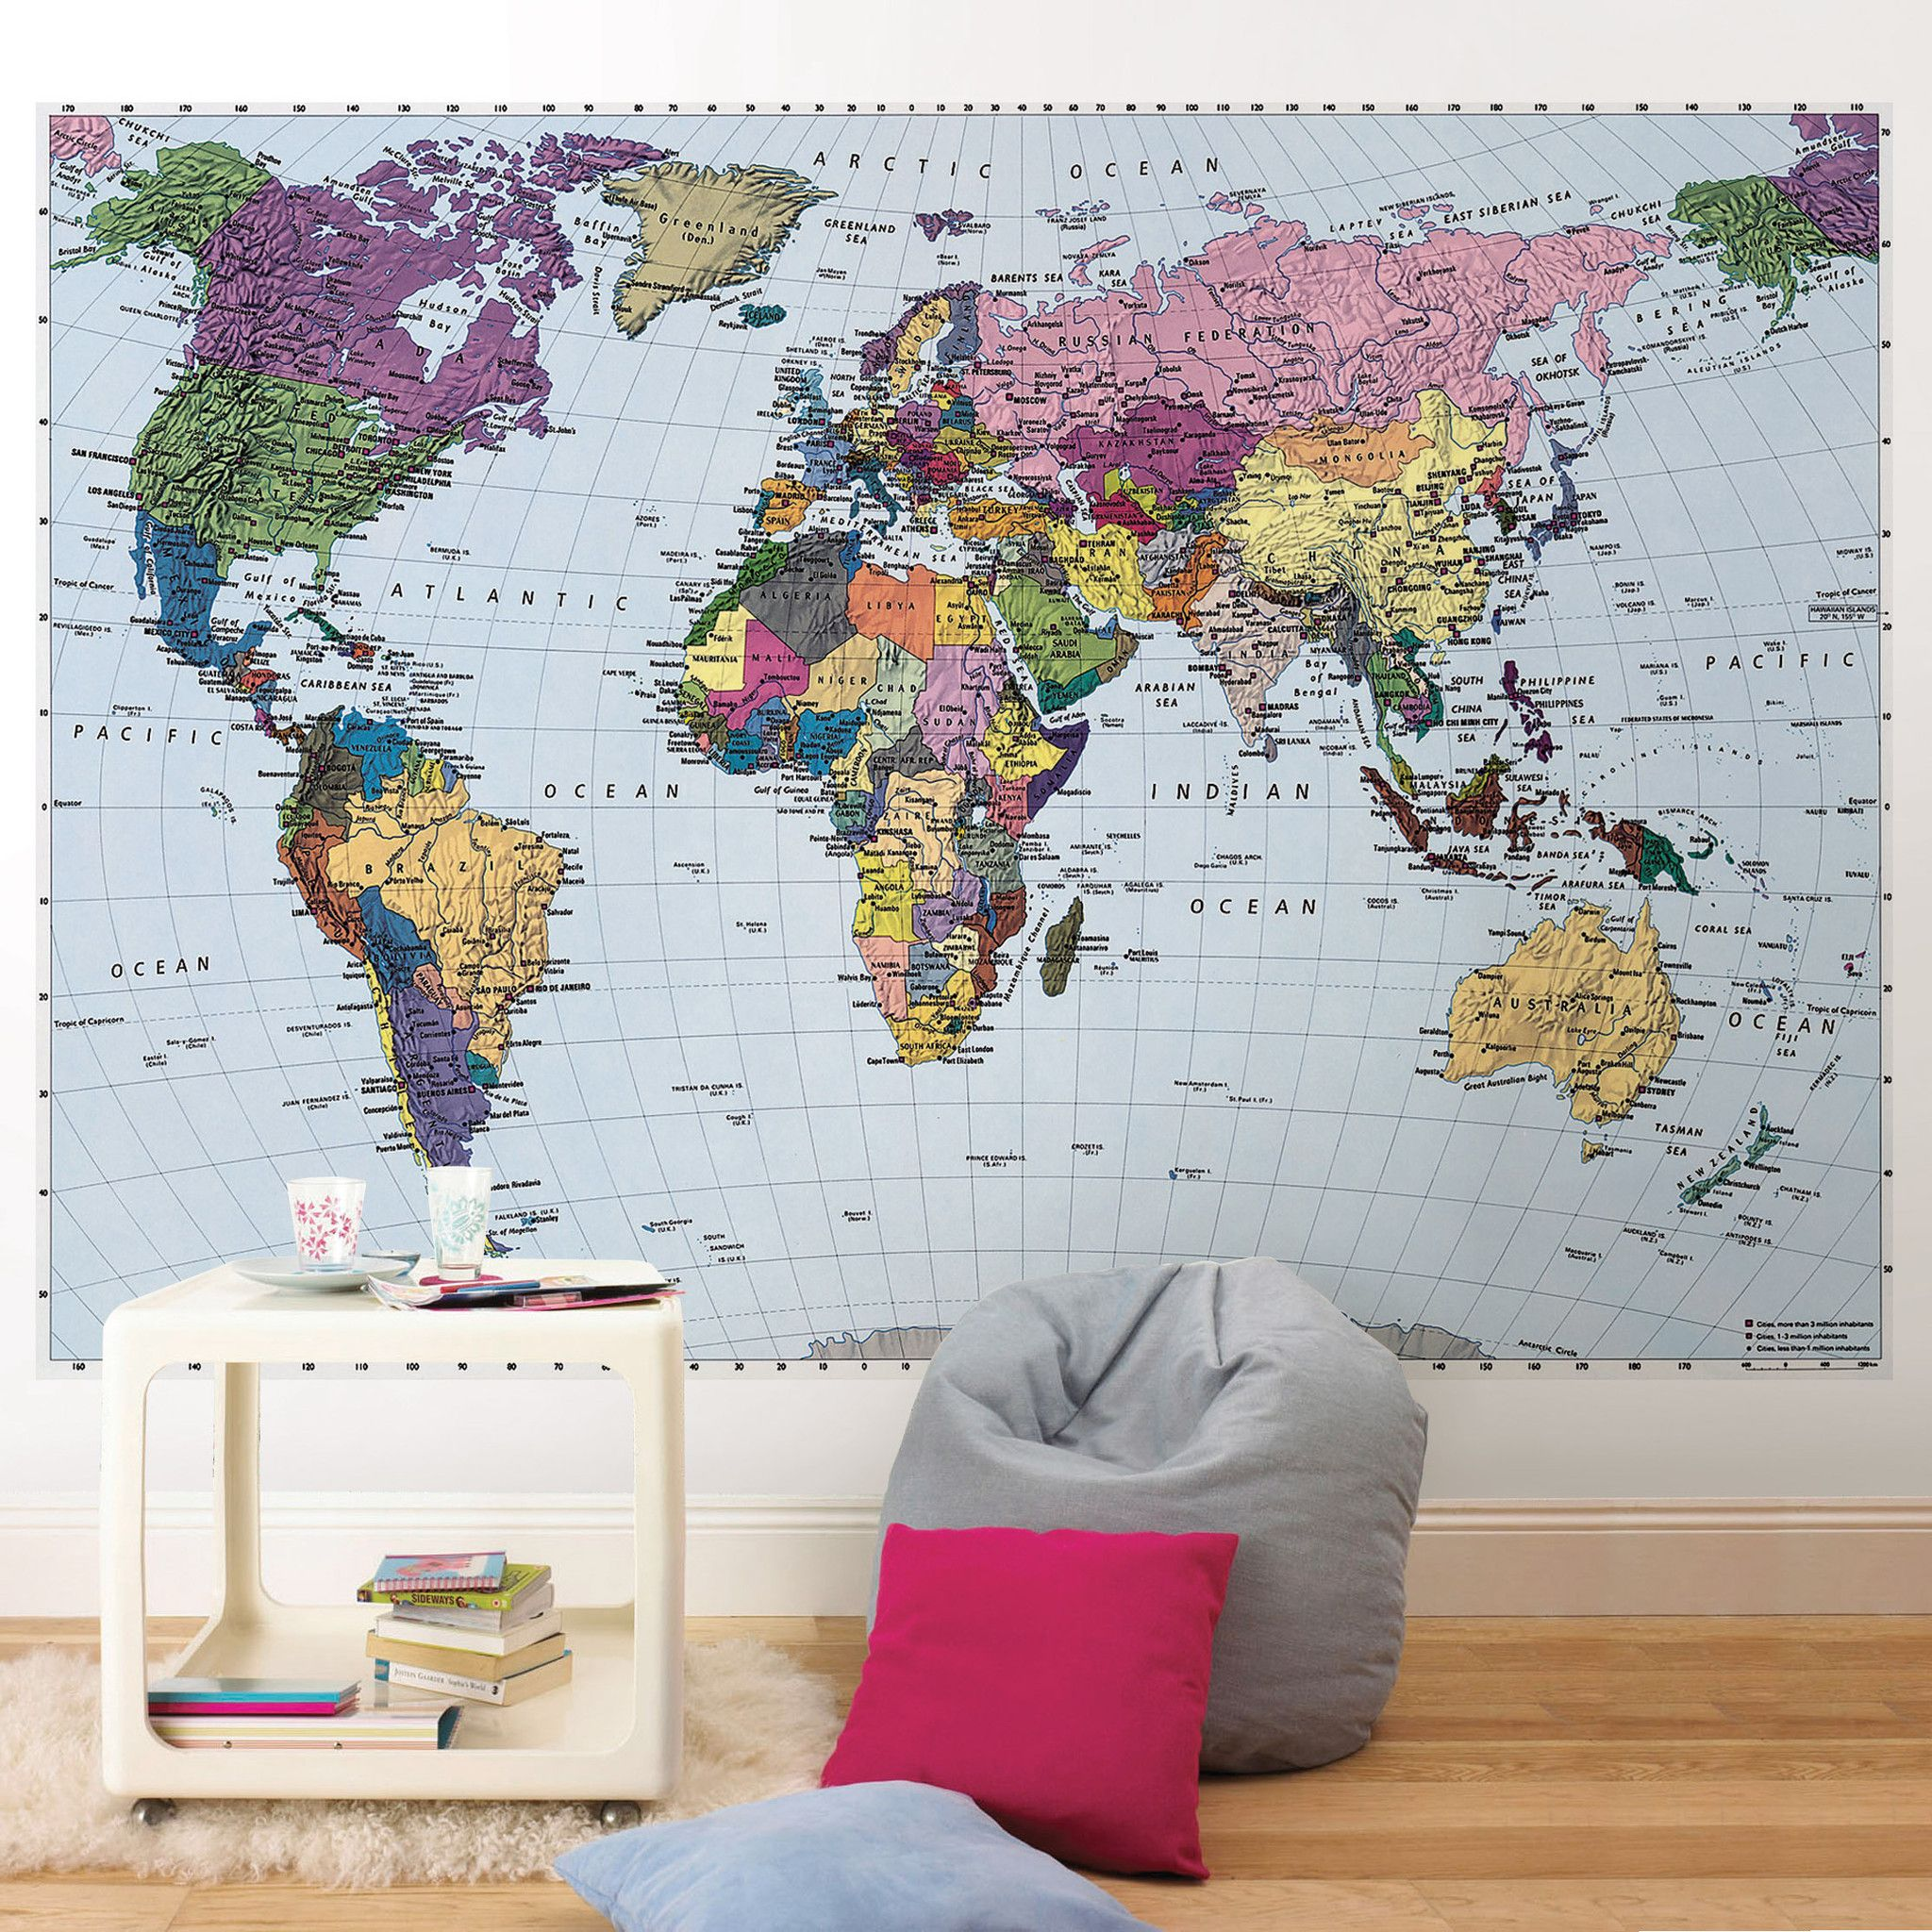 Colorful world map wall mural wallpaper wall murals wallpaper and colorful world map wall mural wallpaper gumiabroncs Image collections